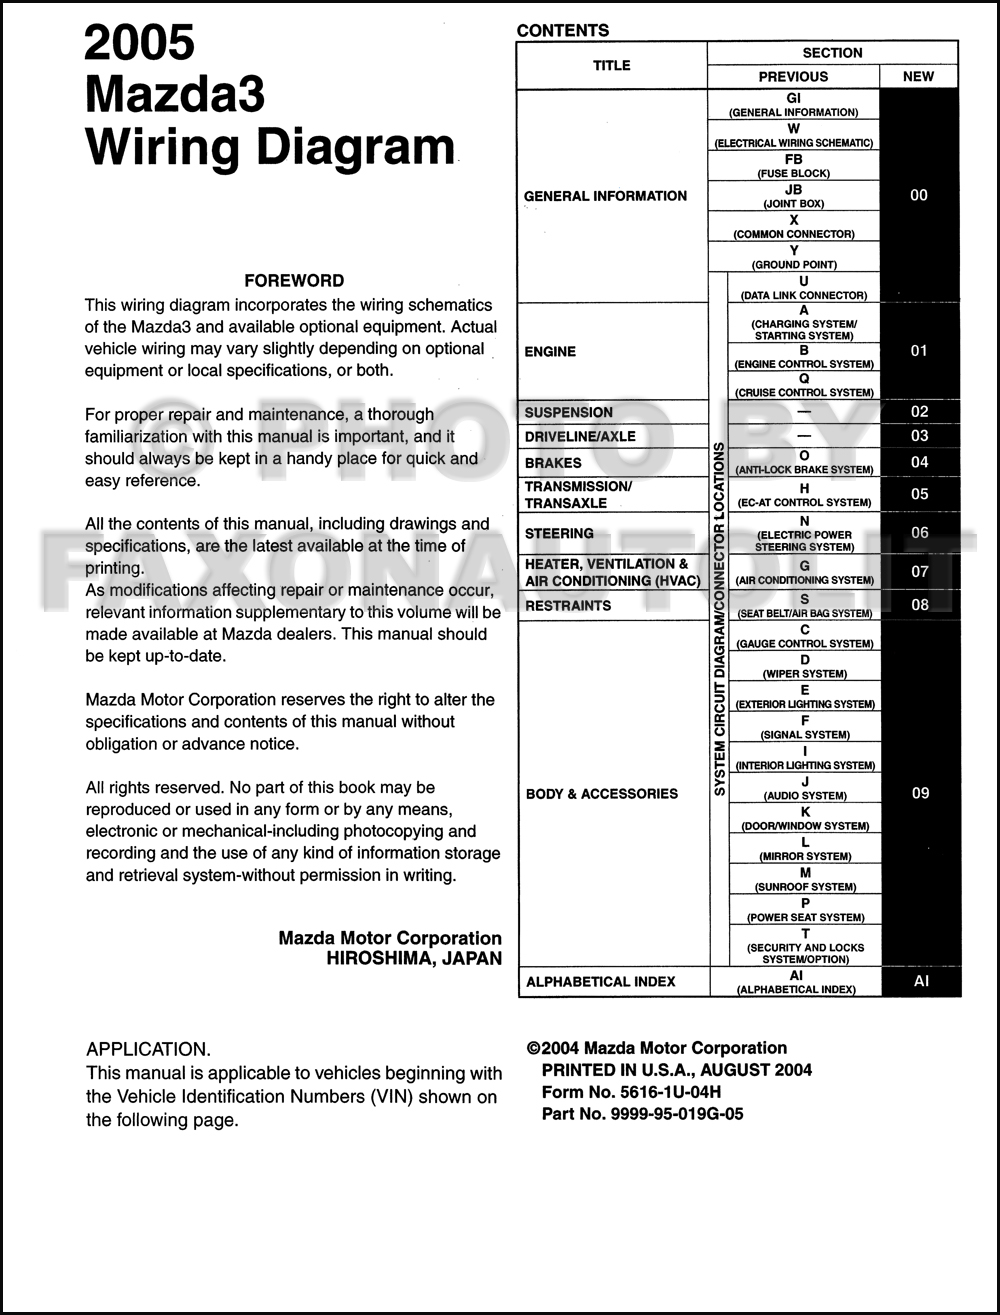 Mazda 6 Wiring Diagram Pdf Schematics Diagrams 2007 3 Engine 2005 Manual Original Mx6